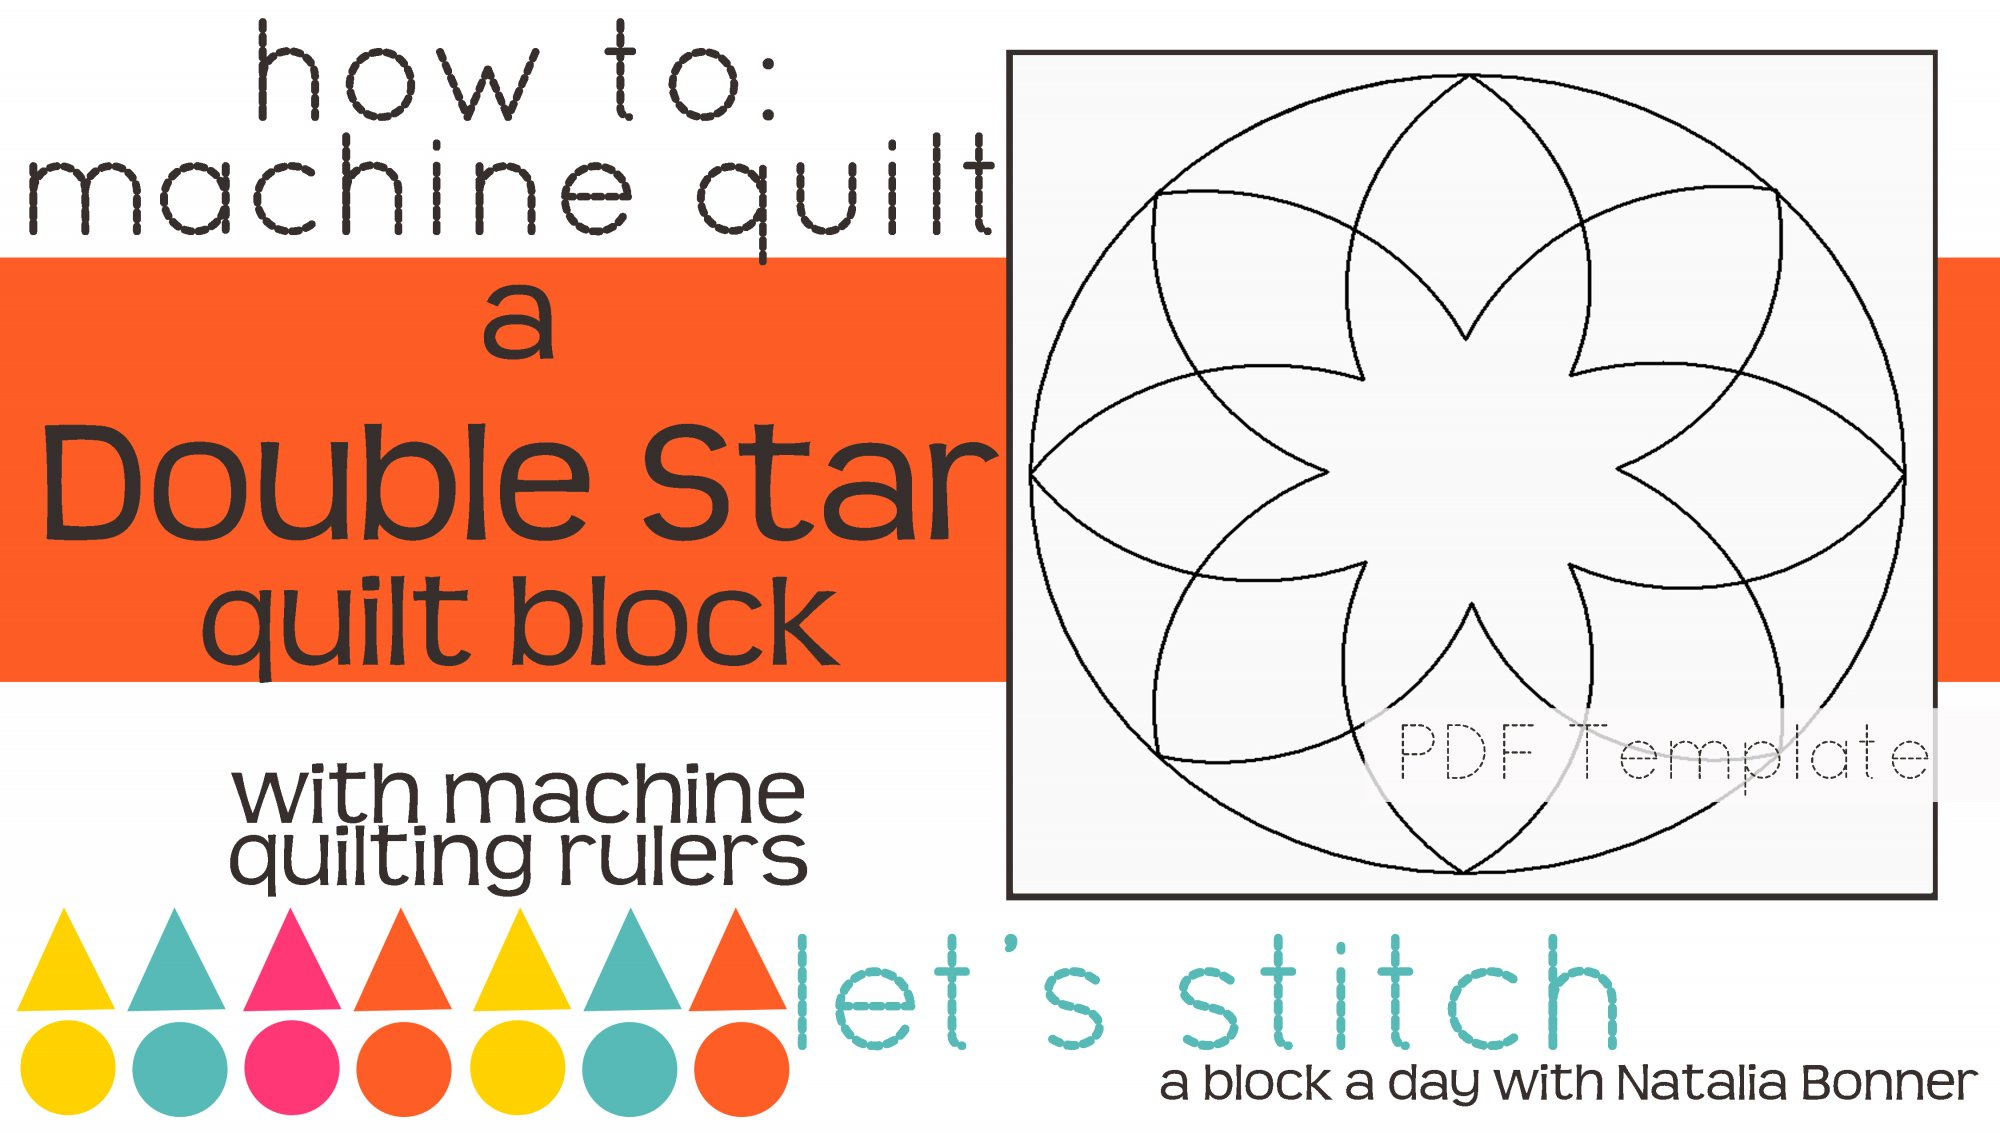 Let's Stitch - A Block a Day With Natalia Bonner - PDF - Double Star